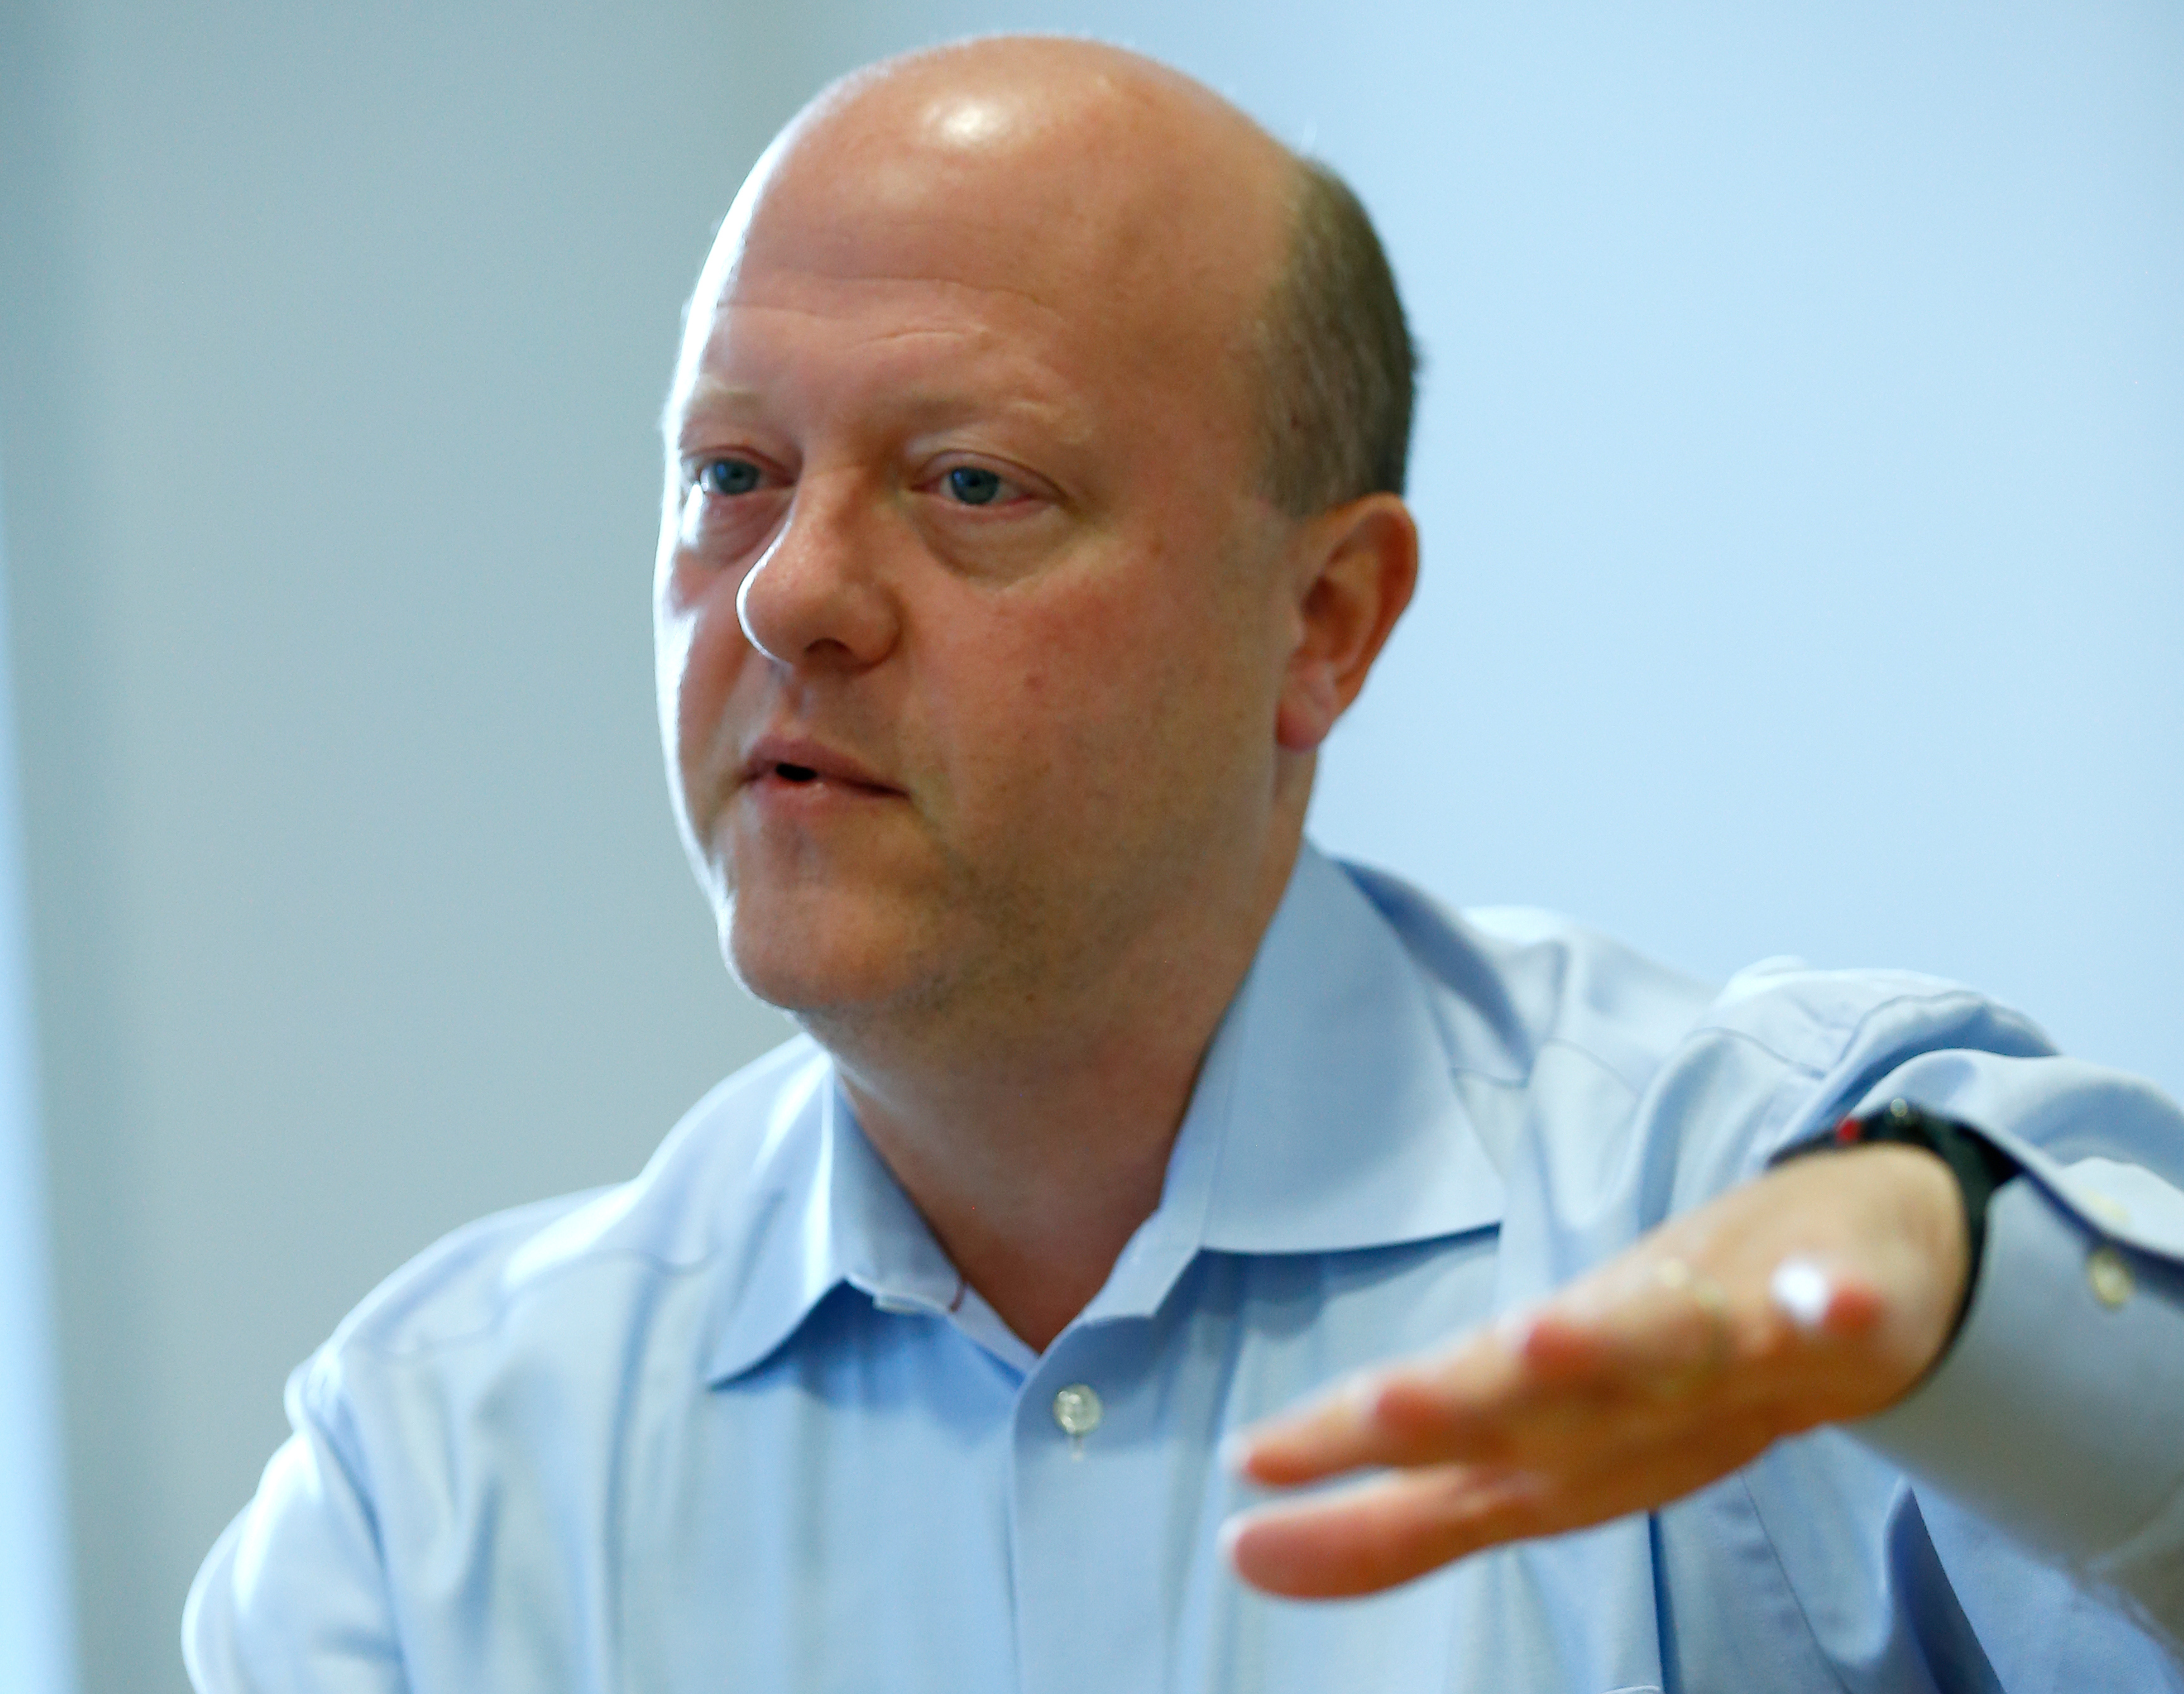 File photo: Jeremy Allaire, the Chief Executive Officer of cryptocurrency start-up Circle. REUTERS/Andrew Winning